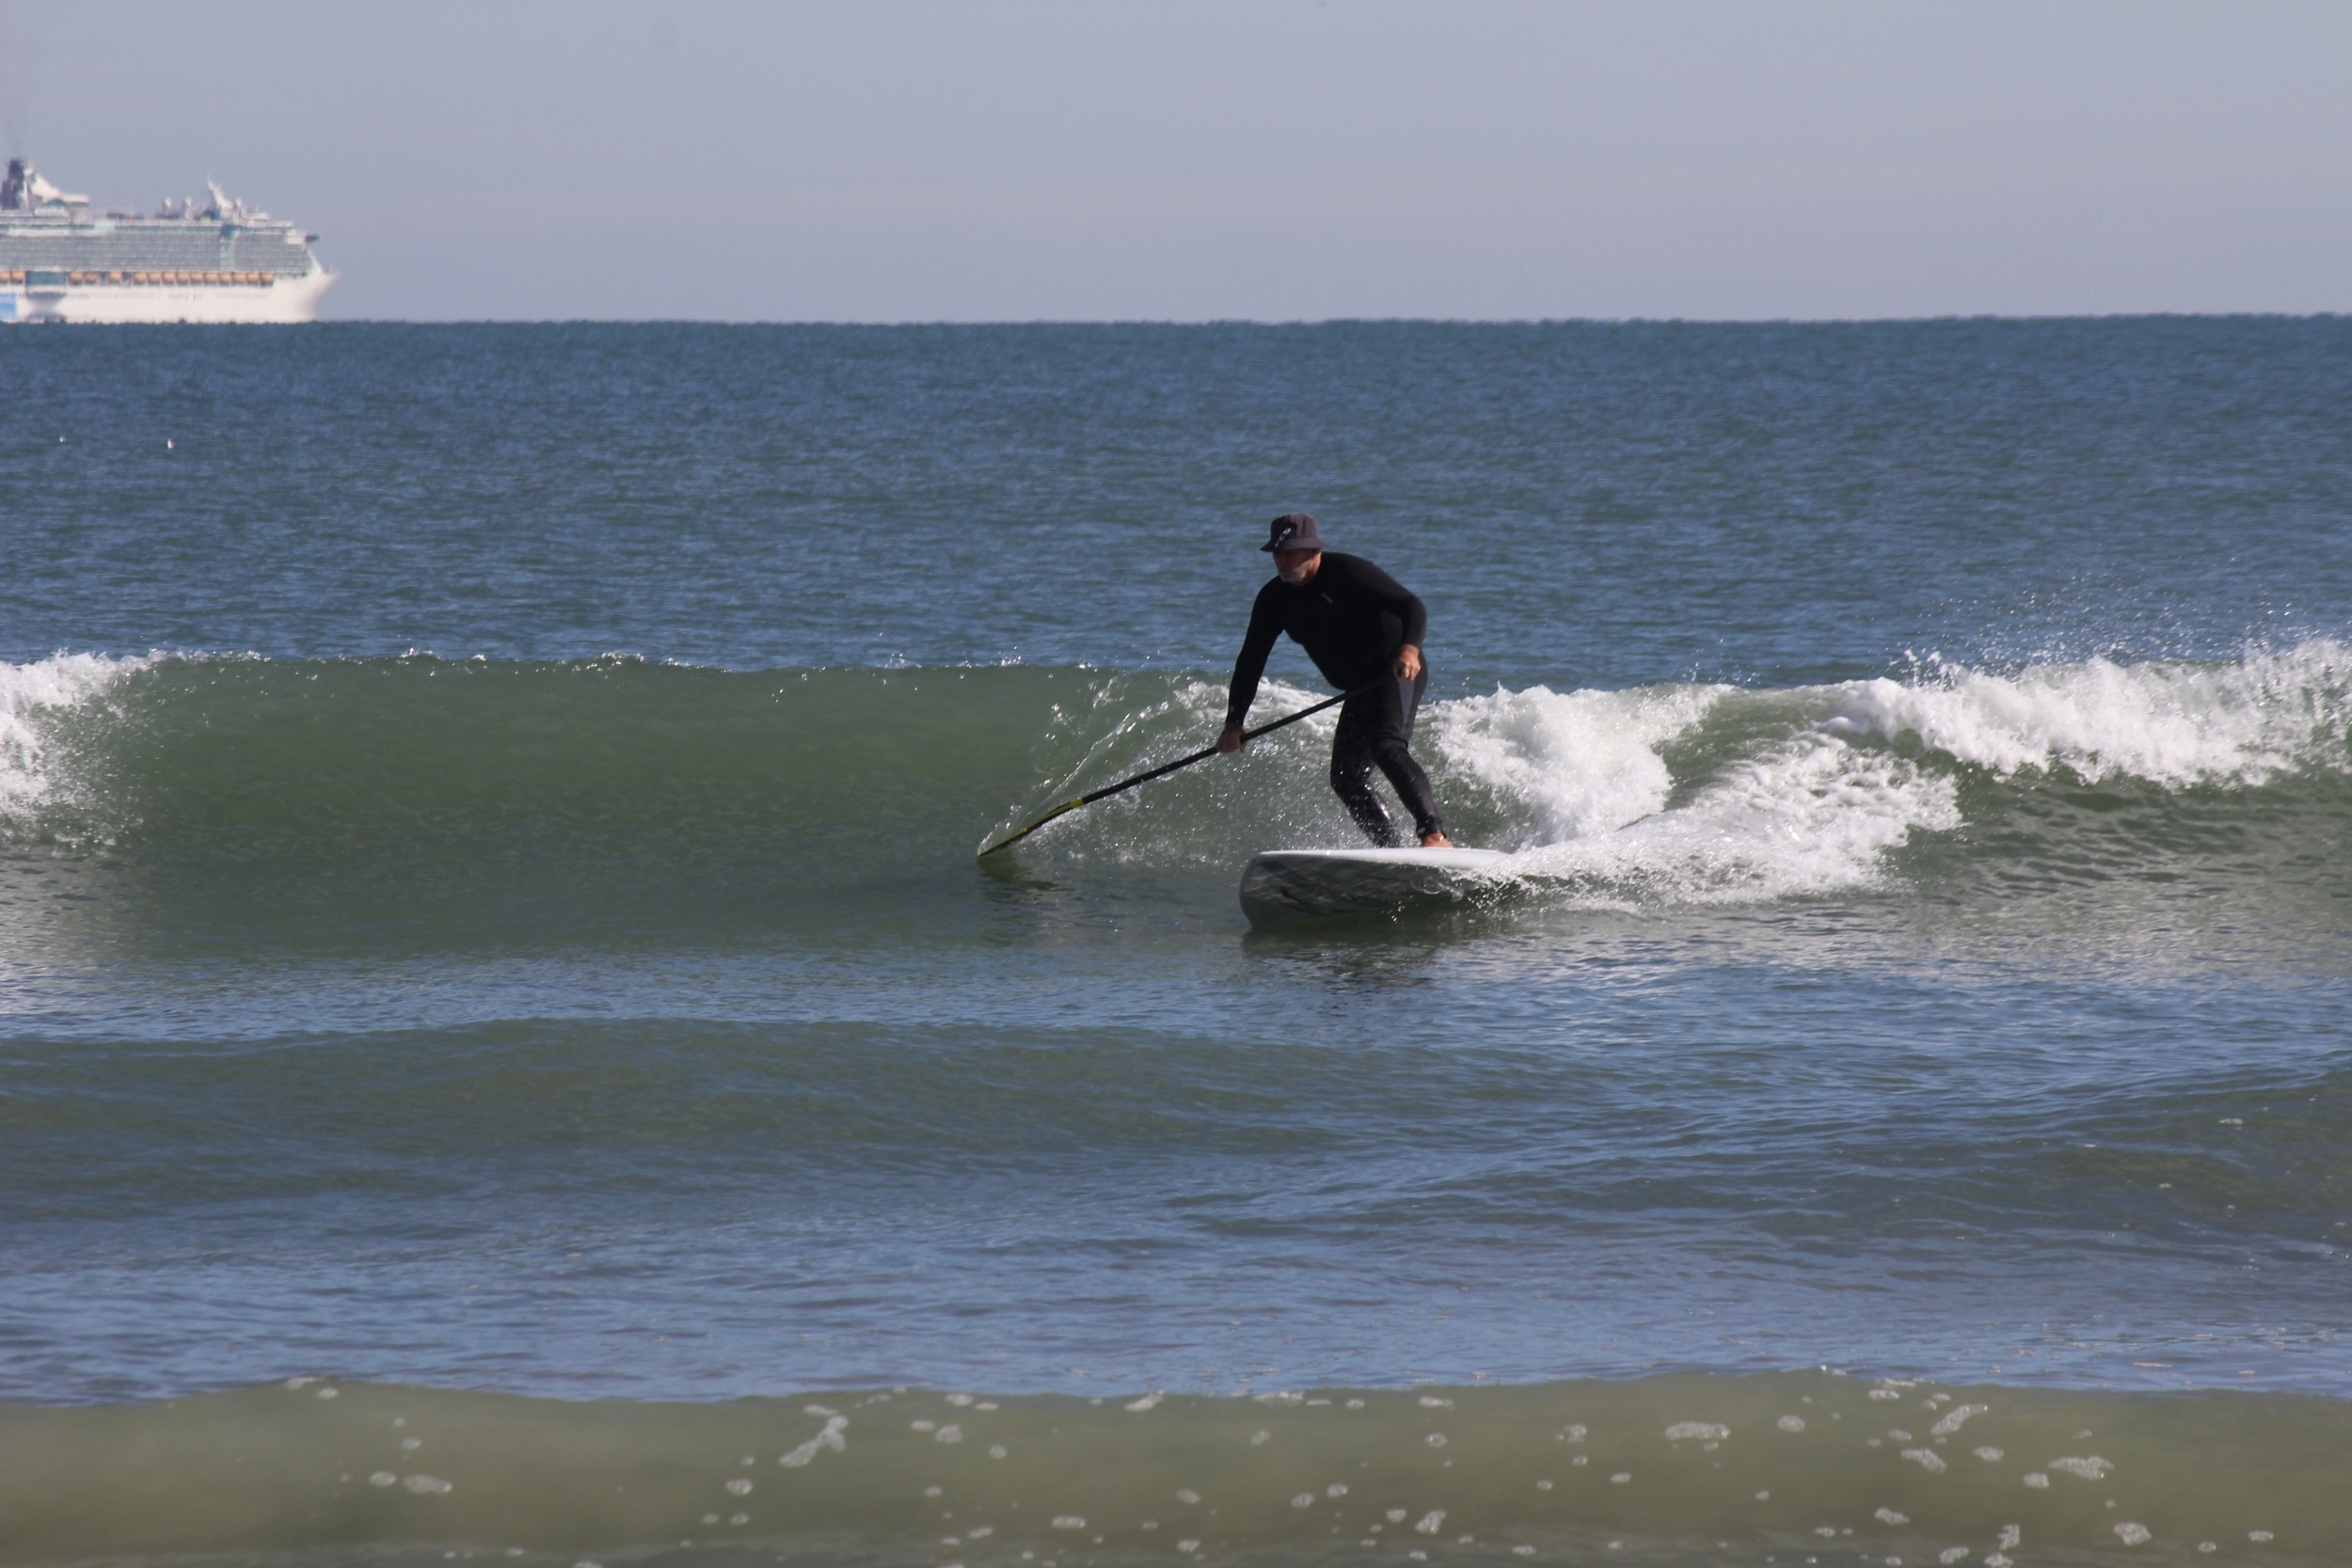 Dave on his 8'6 X32 Inlet Runner